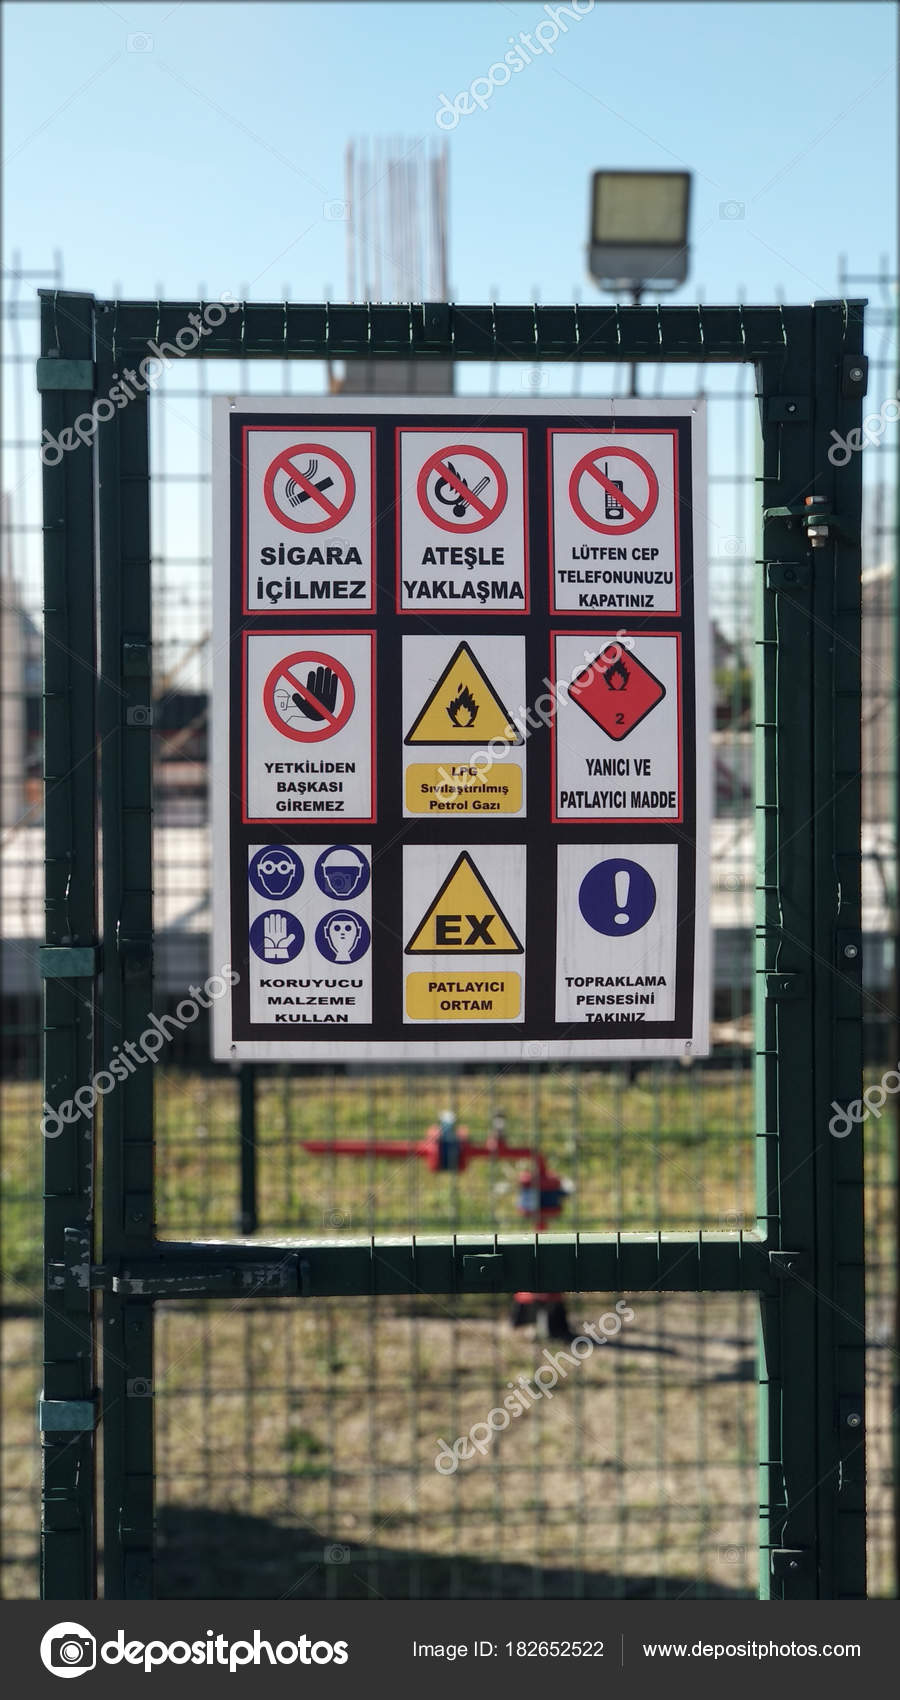 Gas Station Warning Signs – Stock Editorial Photo © creuxnoir #182652522